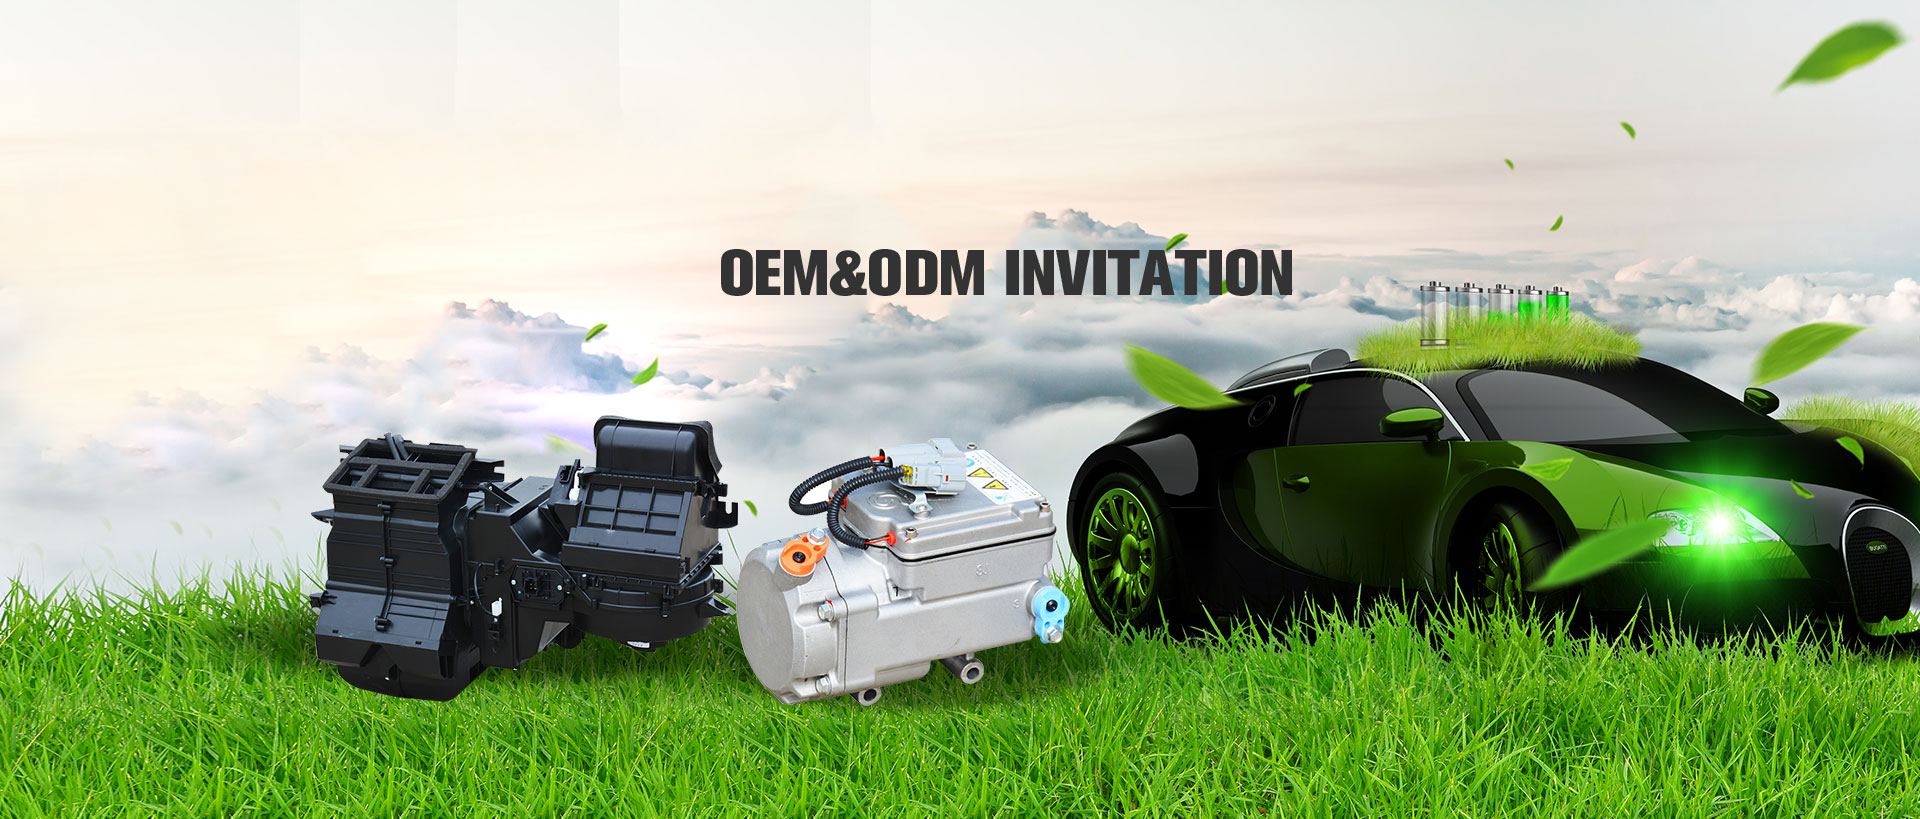 OEM&ODM INVITATION